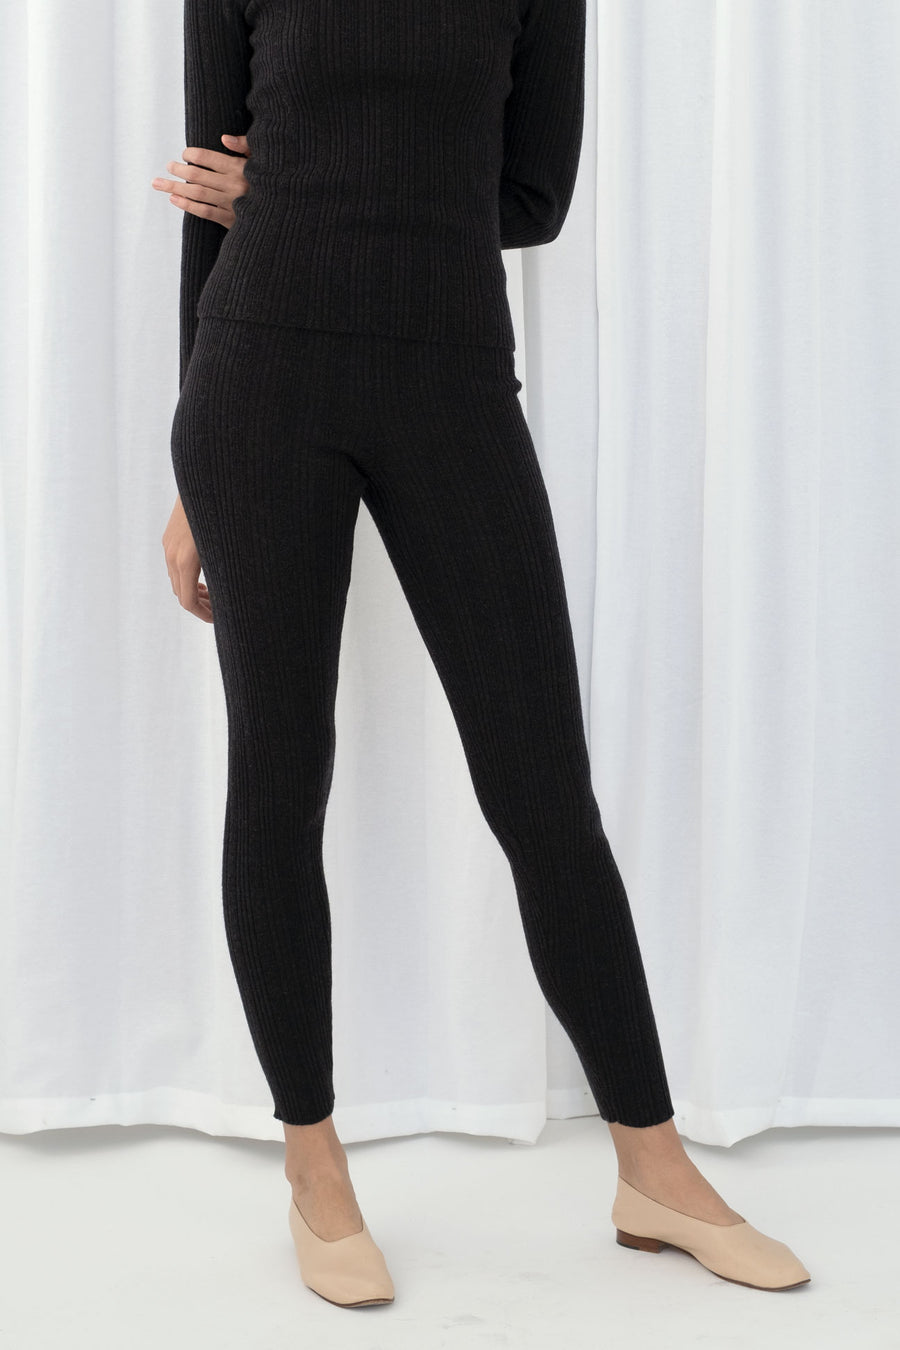 Melange Black Rib Legging